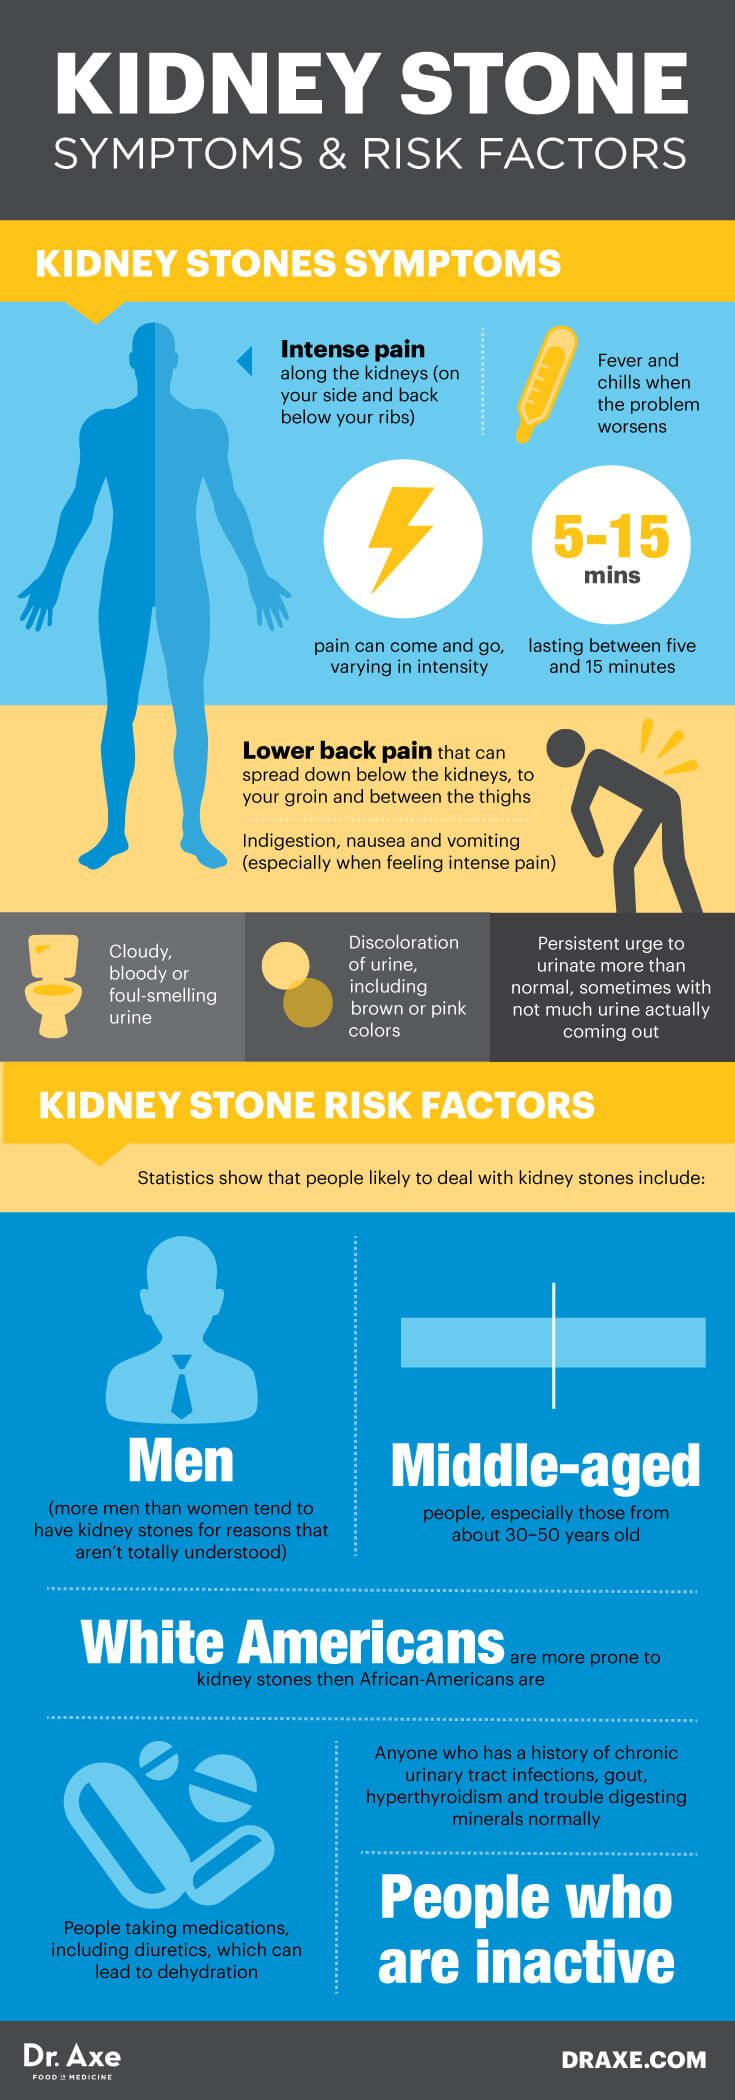 Kidney stone symptoms & risk factors - Dr. Axe http://www.draxe.com #health #holistic #natural